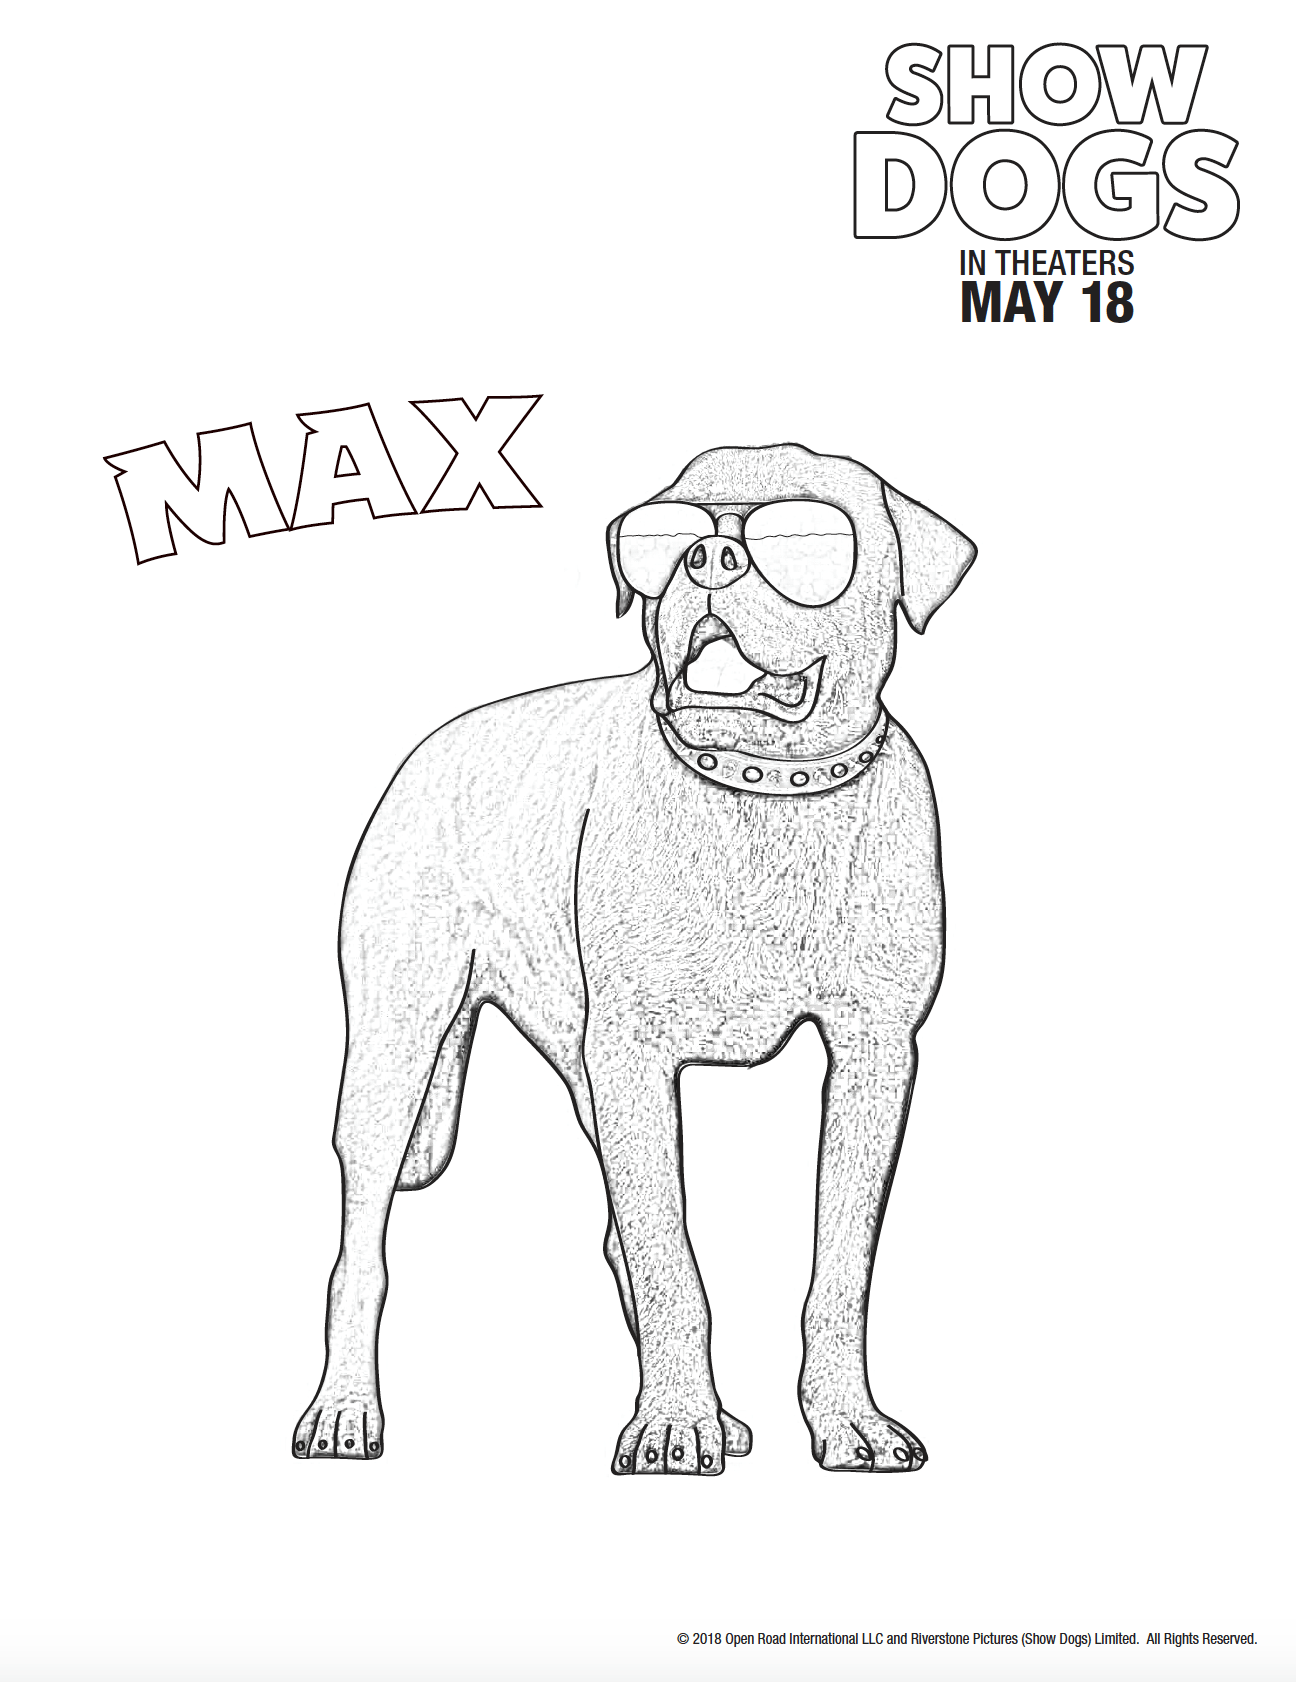 Dog Coloring Pages From The Show Dogs Movie Dog Coloring Page Dog Movies Coloring Pages [ 1682 x 1296 Pixel ]